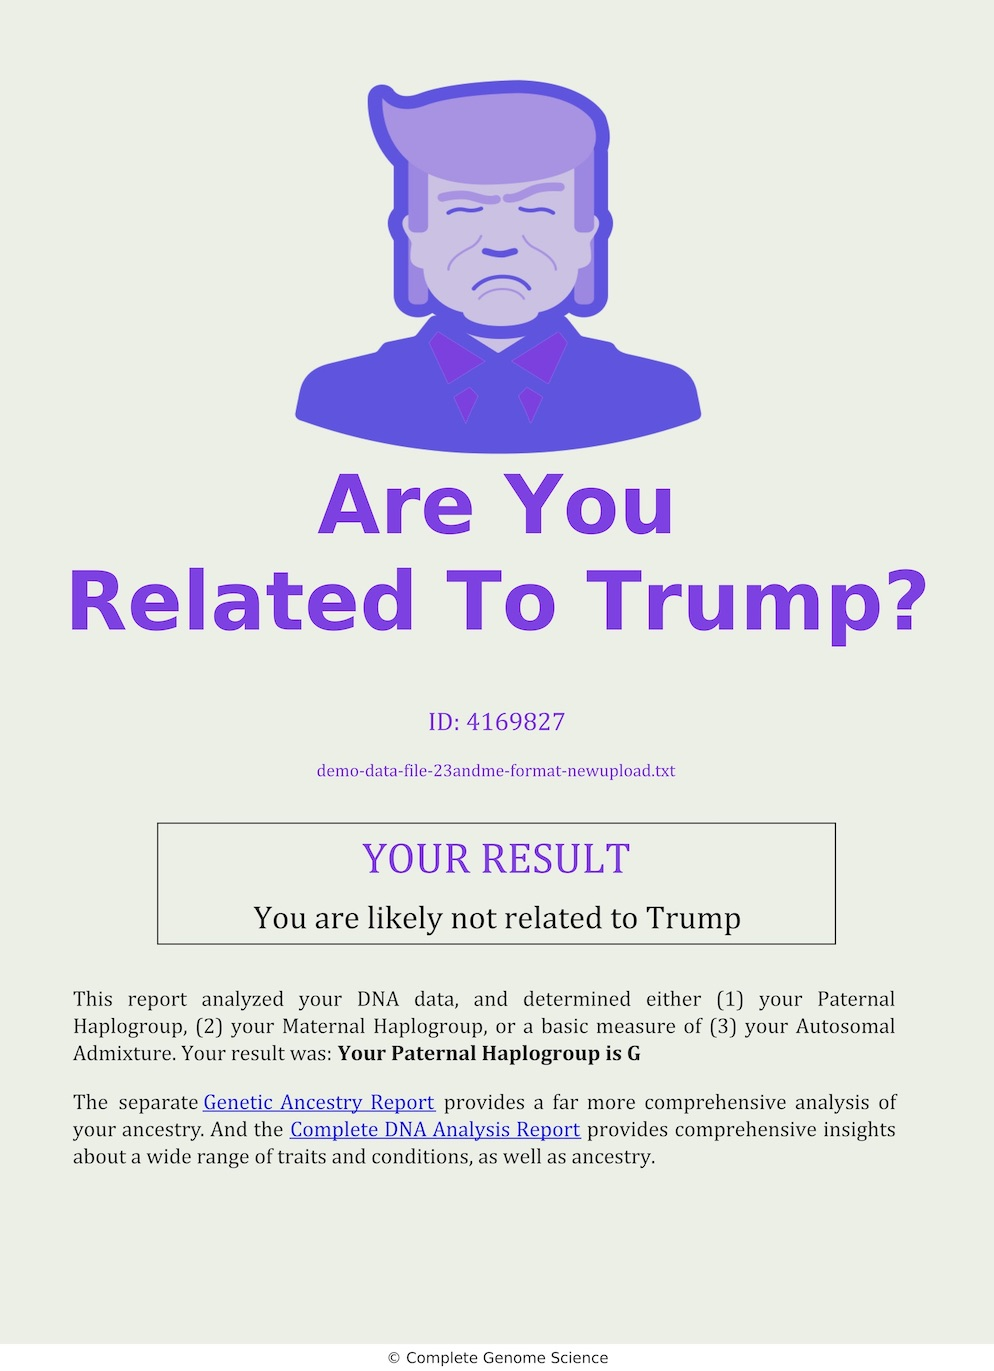 Are You Related To Trump DNA Analysis Report Cover